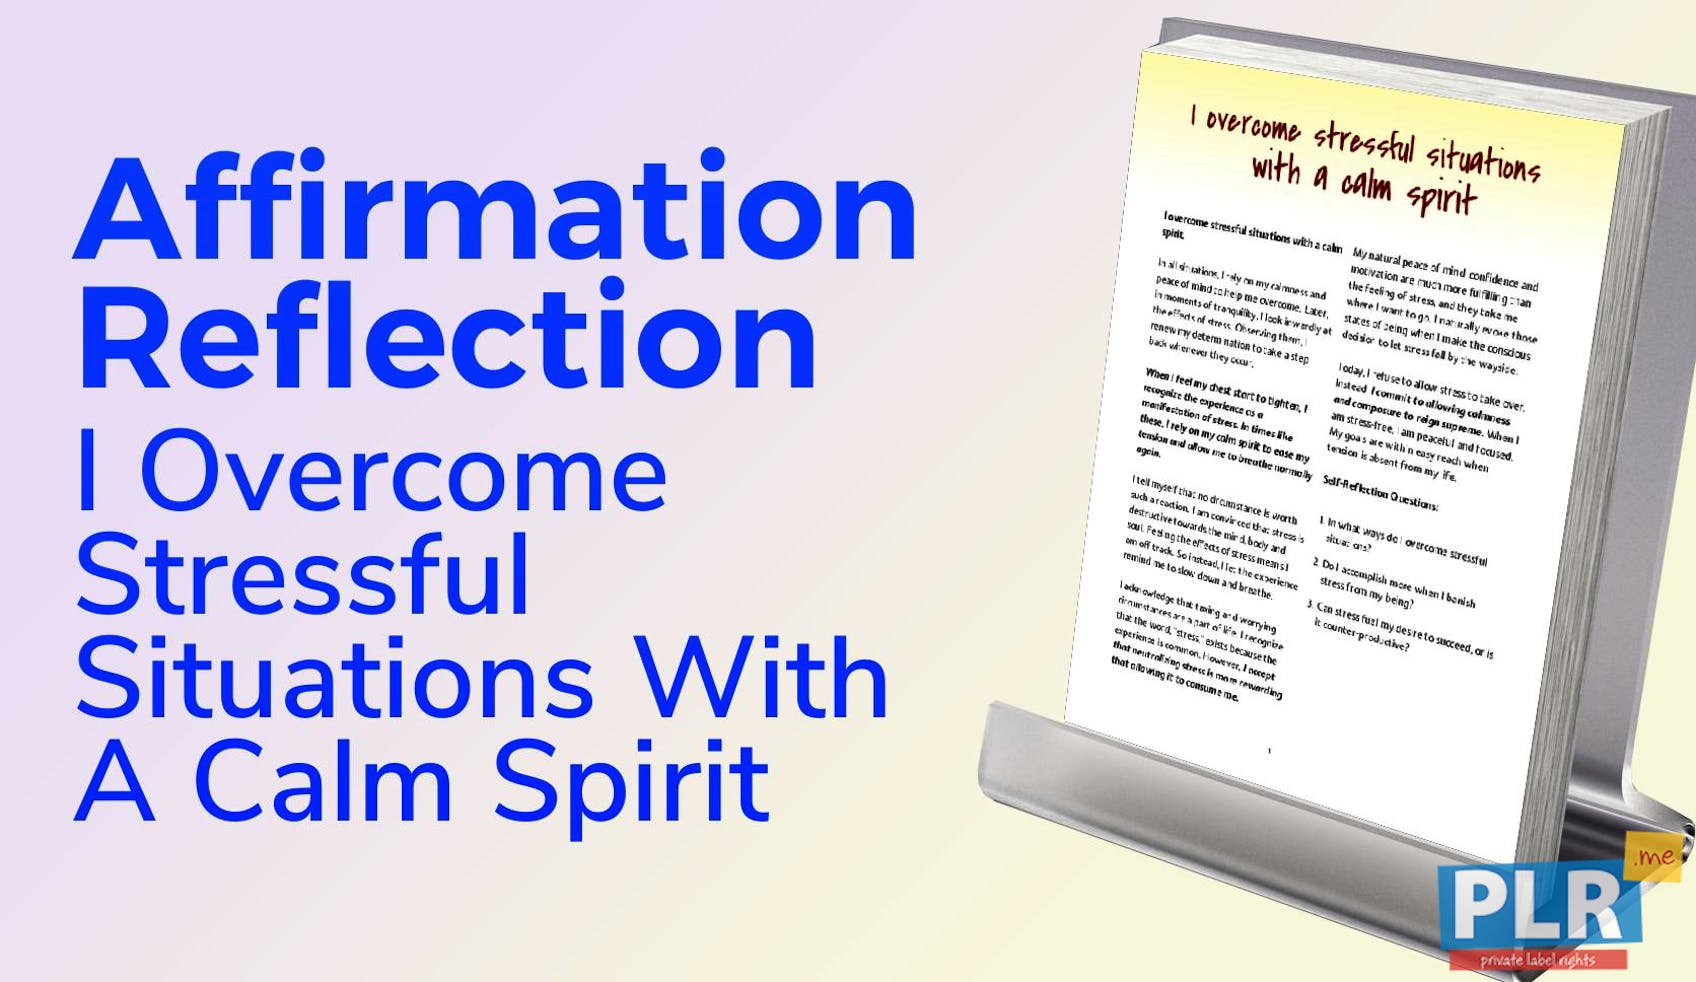 I Overcome Stressful Situations With A Calm Spirit